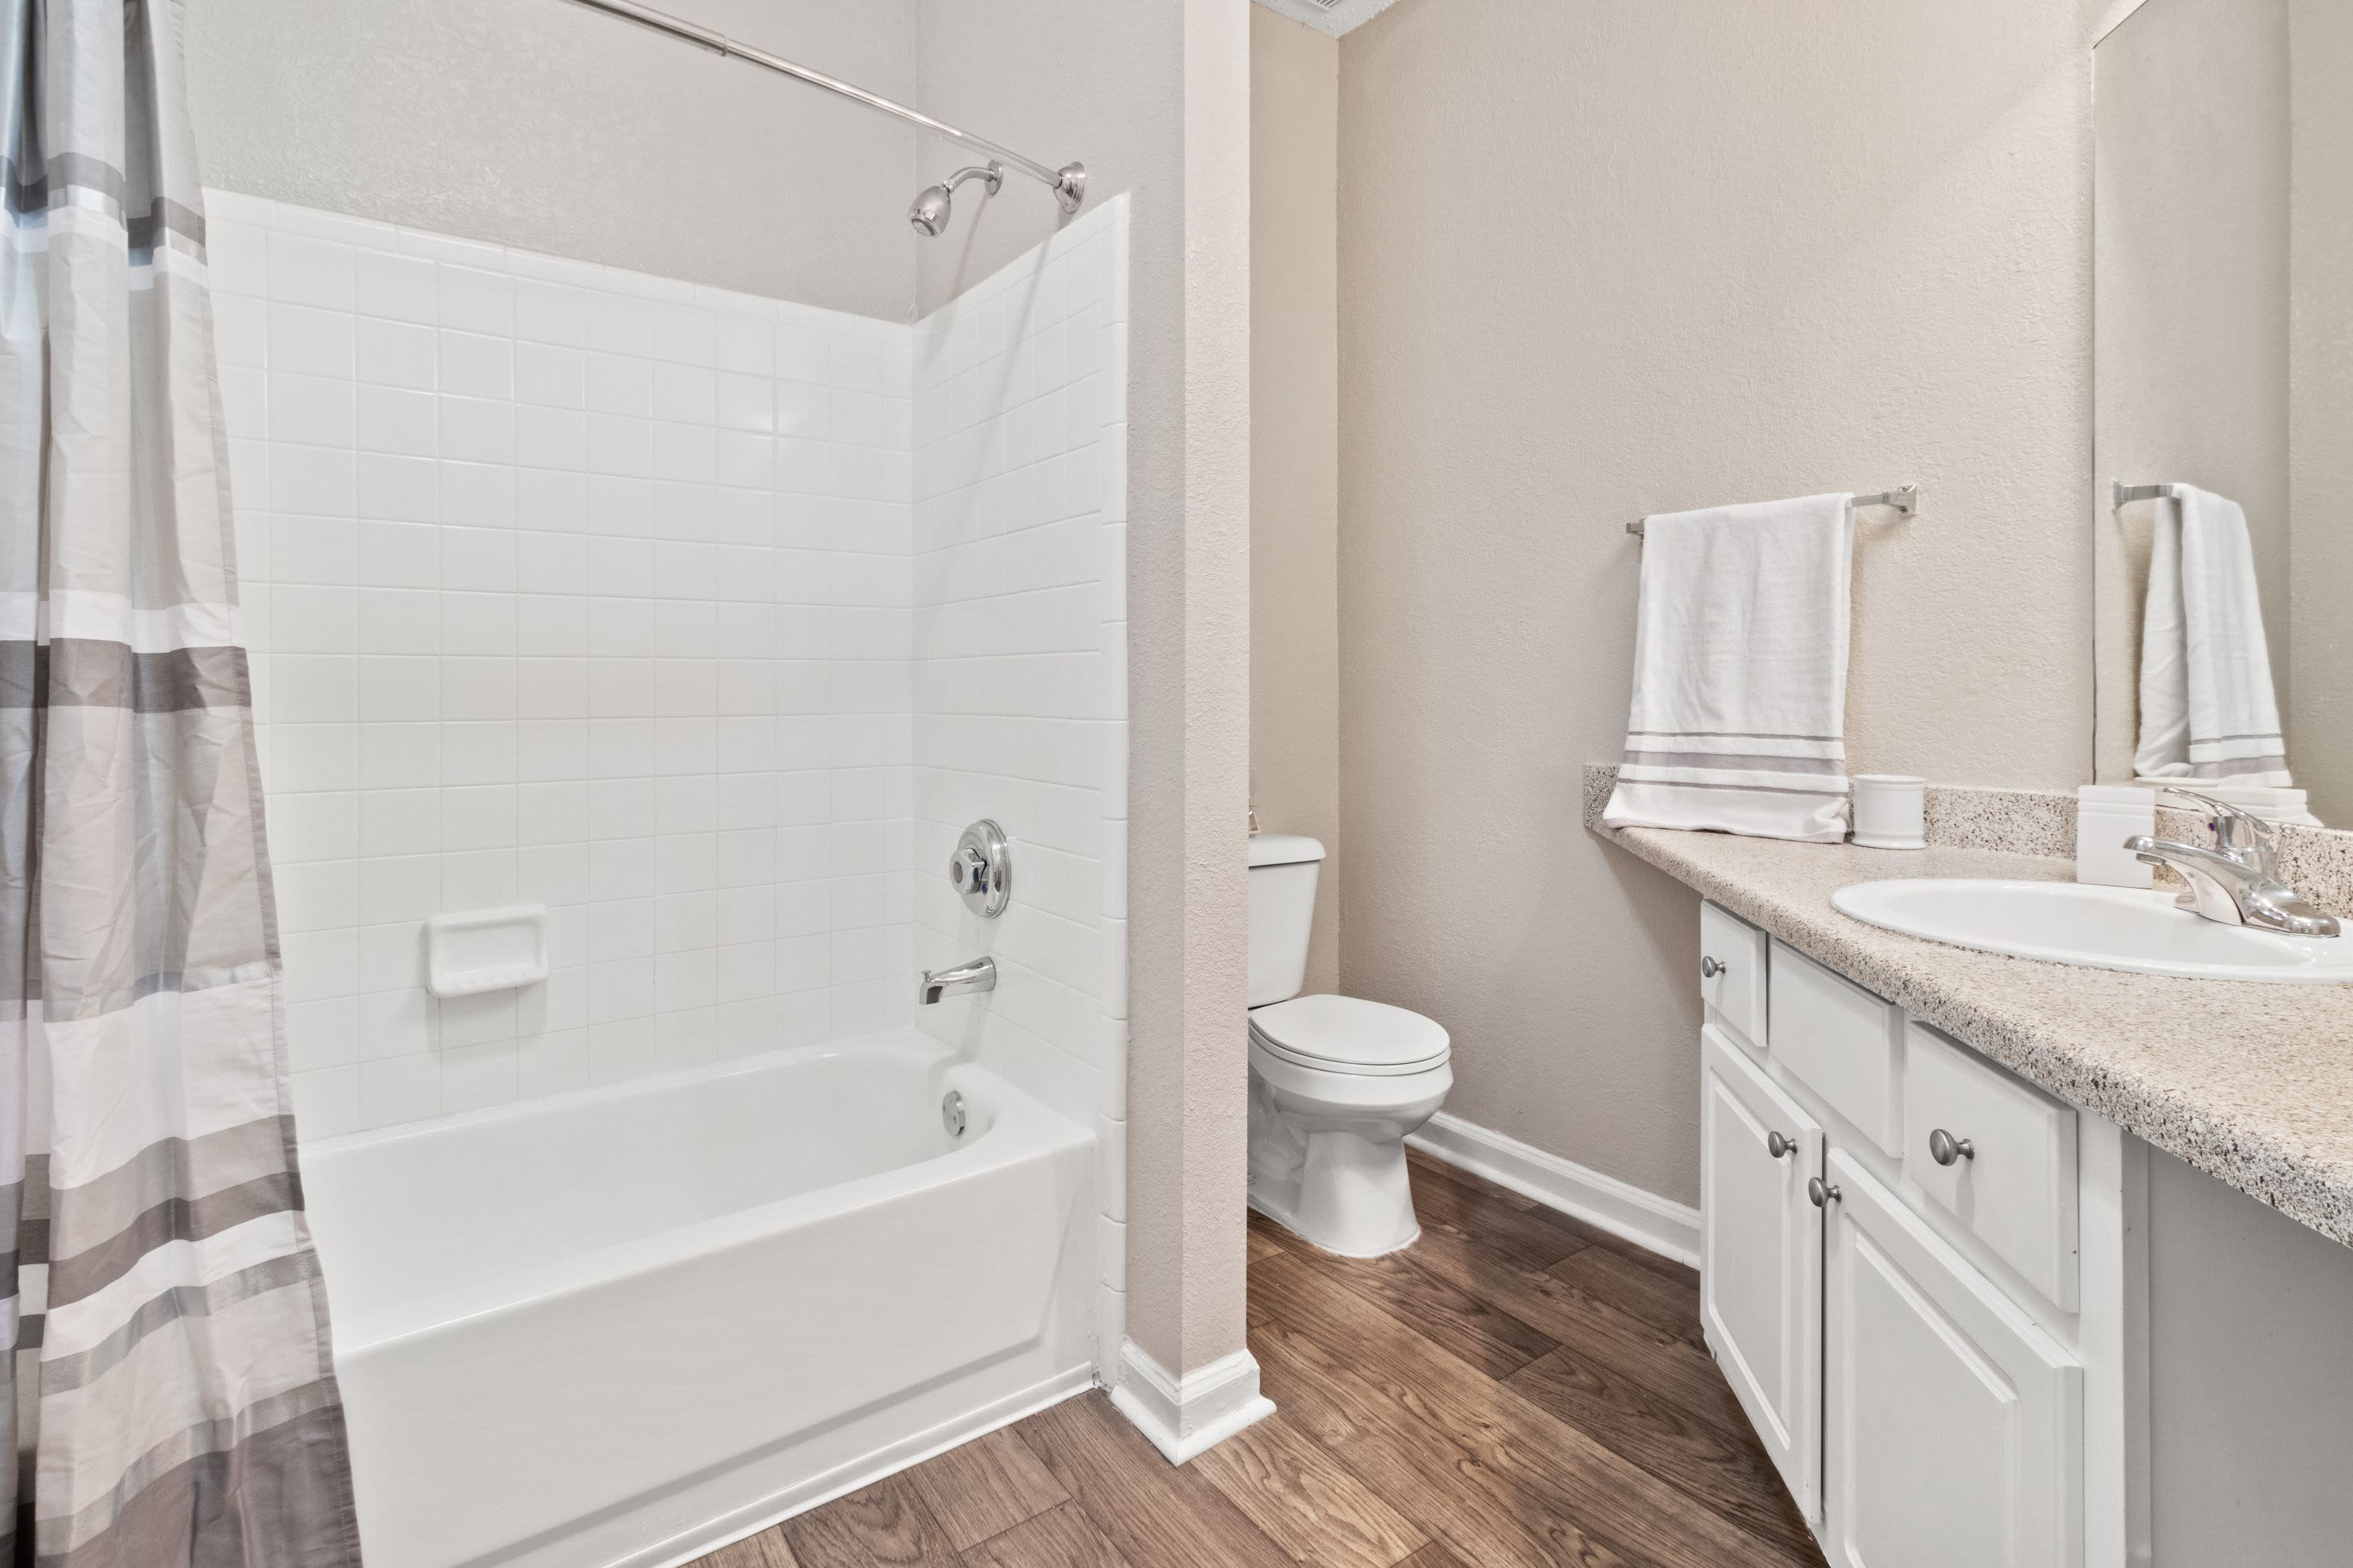 Bathroom with a shower and bathtub at Marquis Midtown West in Atlanta, Georgia